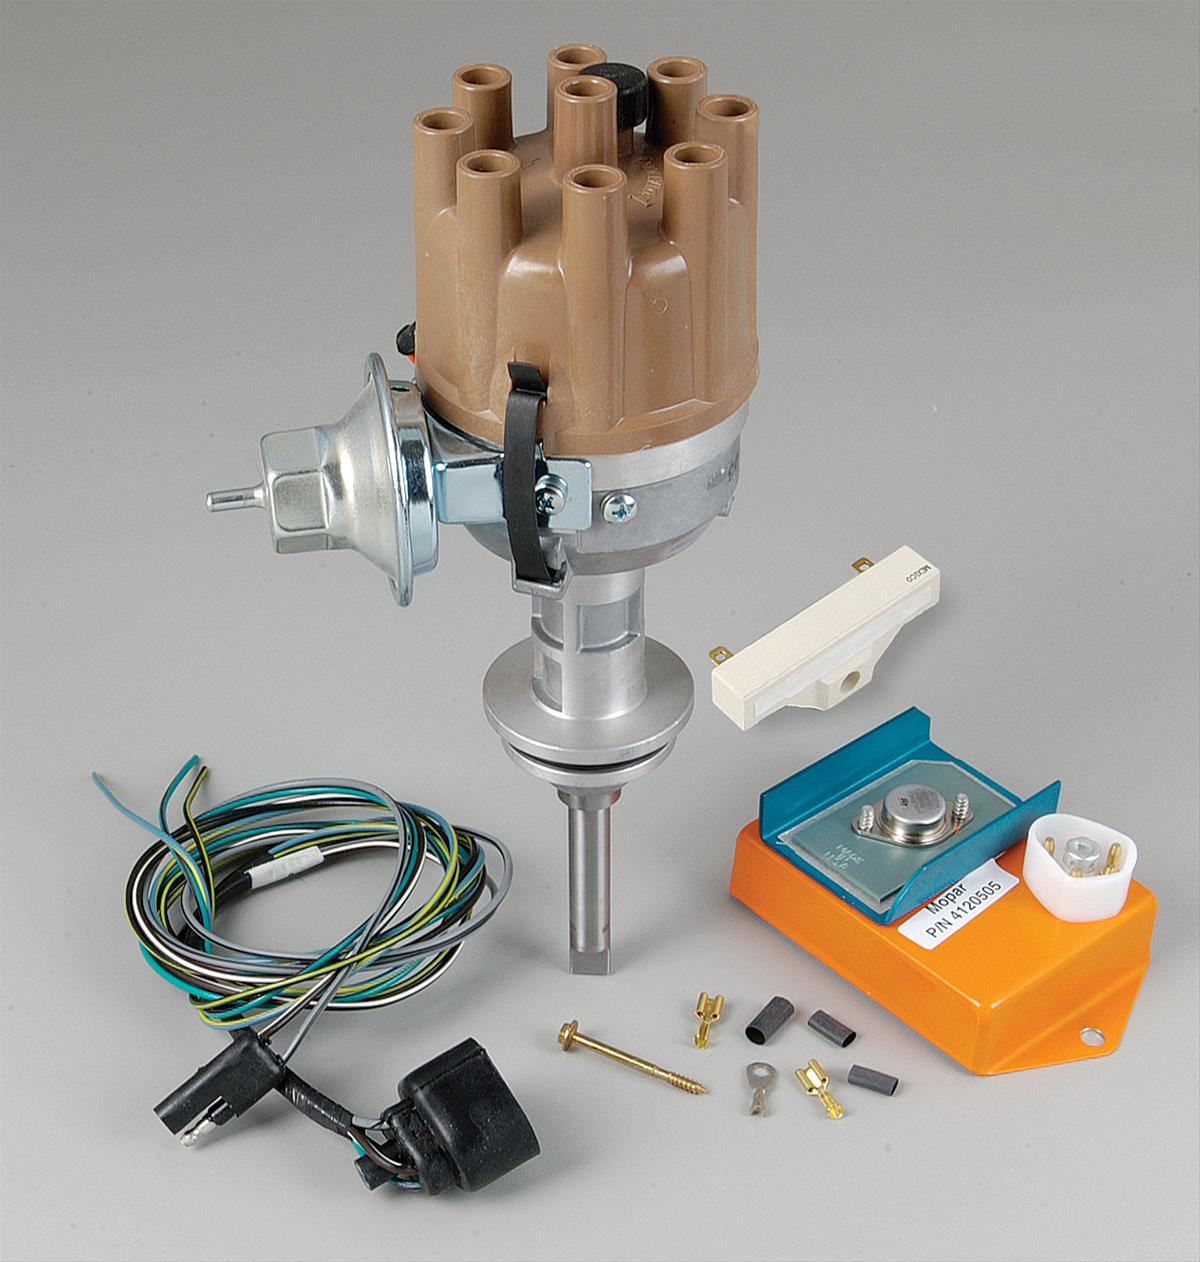 Mopar Performance Electronic Conversion Kits with Distributor 3690428 - Free Shipping on Orders